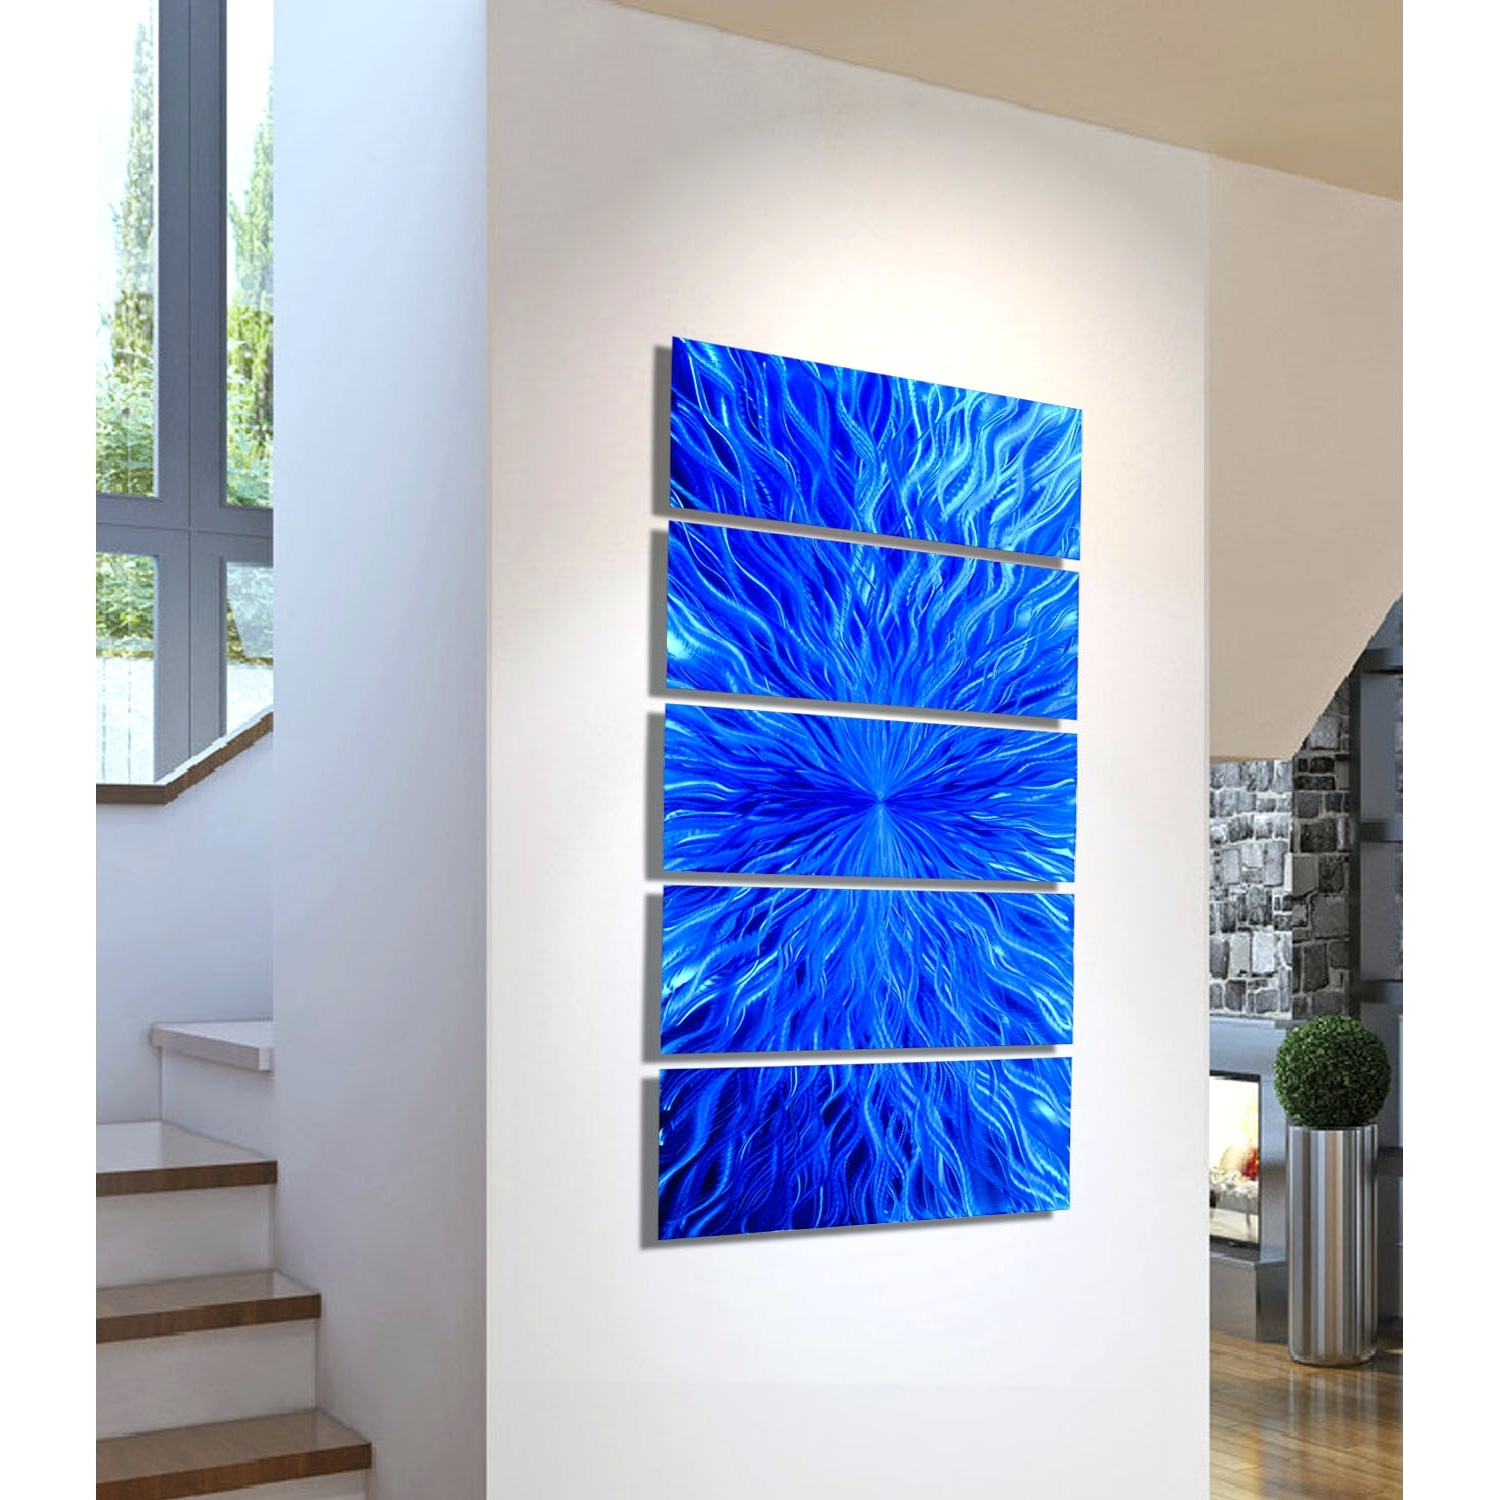 Contemporary Fused Glass Wall Art Inside Most Current Wall Arts ~ Blown Glass Wall Decor Fused Glass Wall Art Artwork (View 1 of 15)